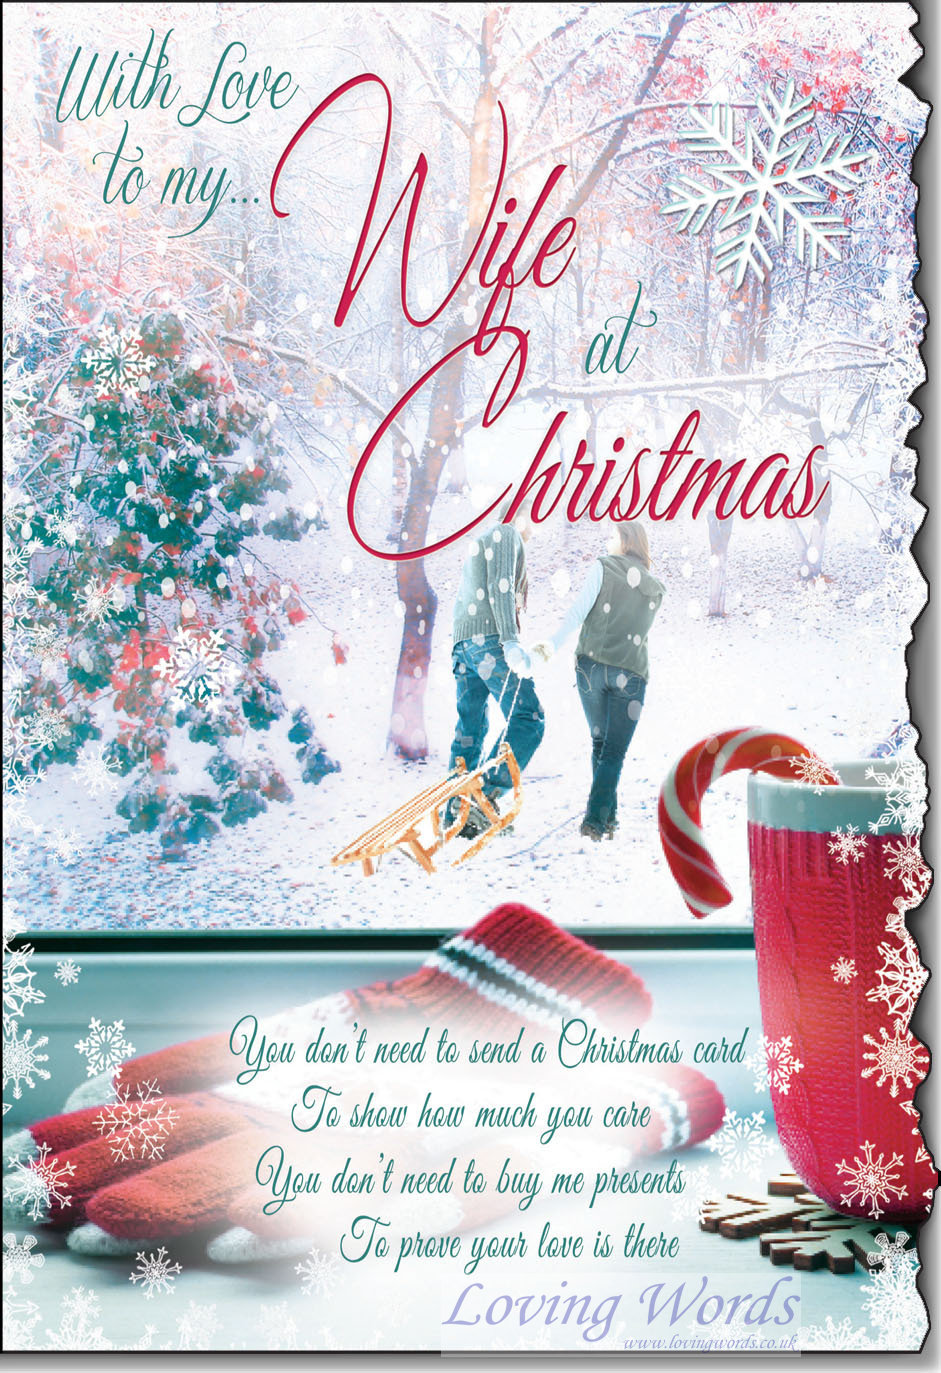 With love to my wife at christmas greeting cards by loving words personalised greeting cards m4hsunfo